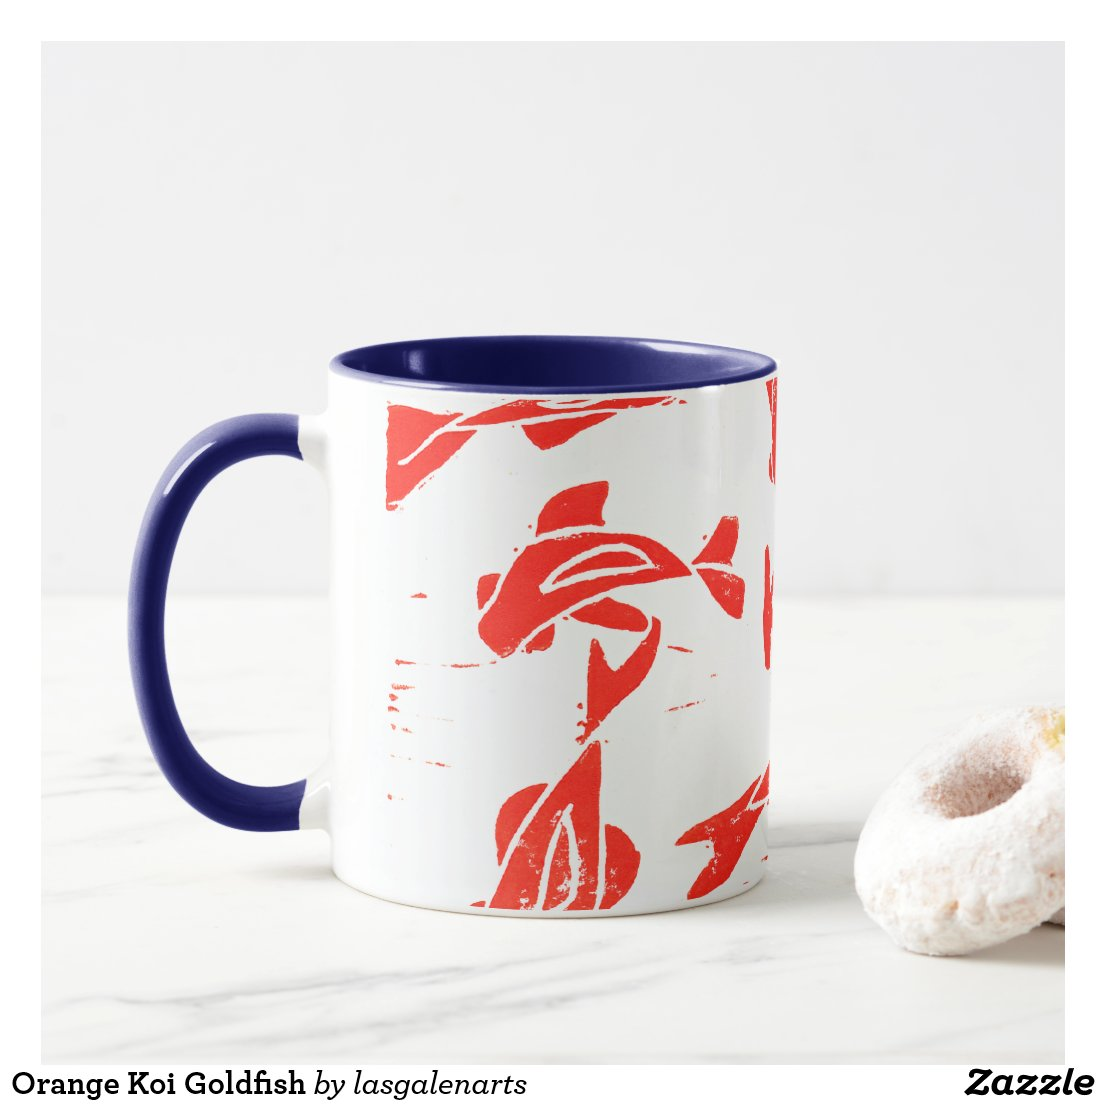 Orange Koi Linocut Mug